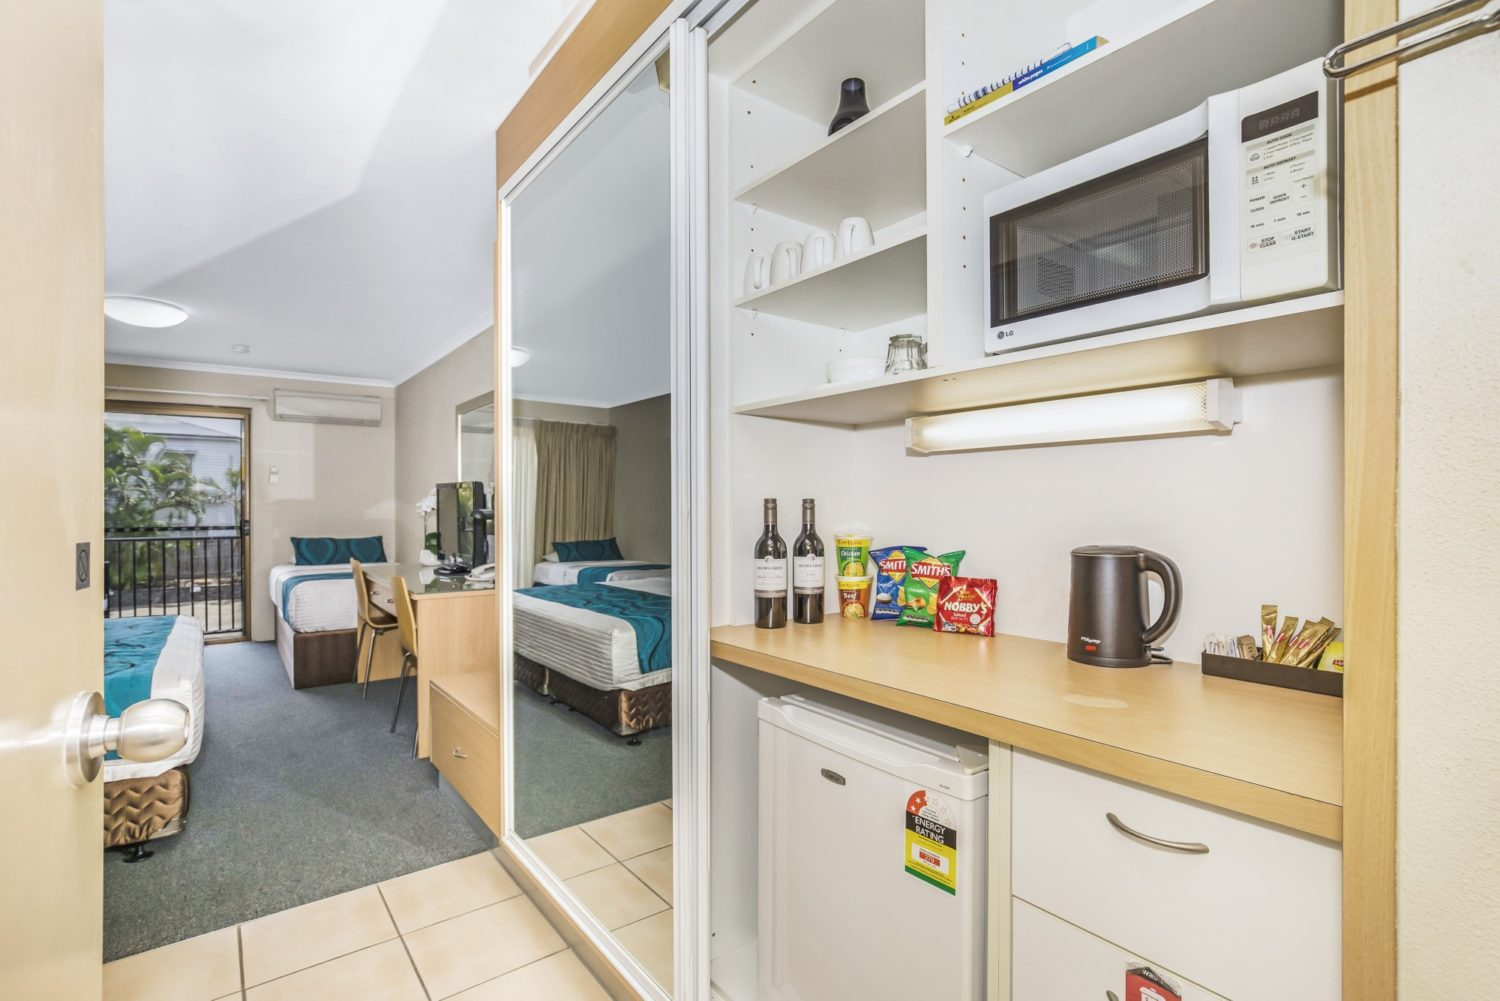 Brisbane-Airport-Motel-85 accommodation (2) (3)